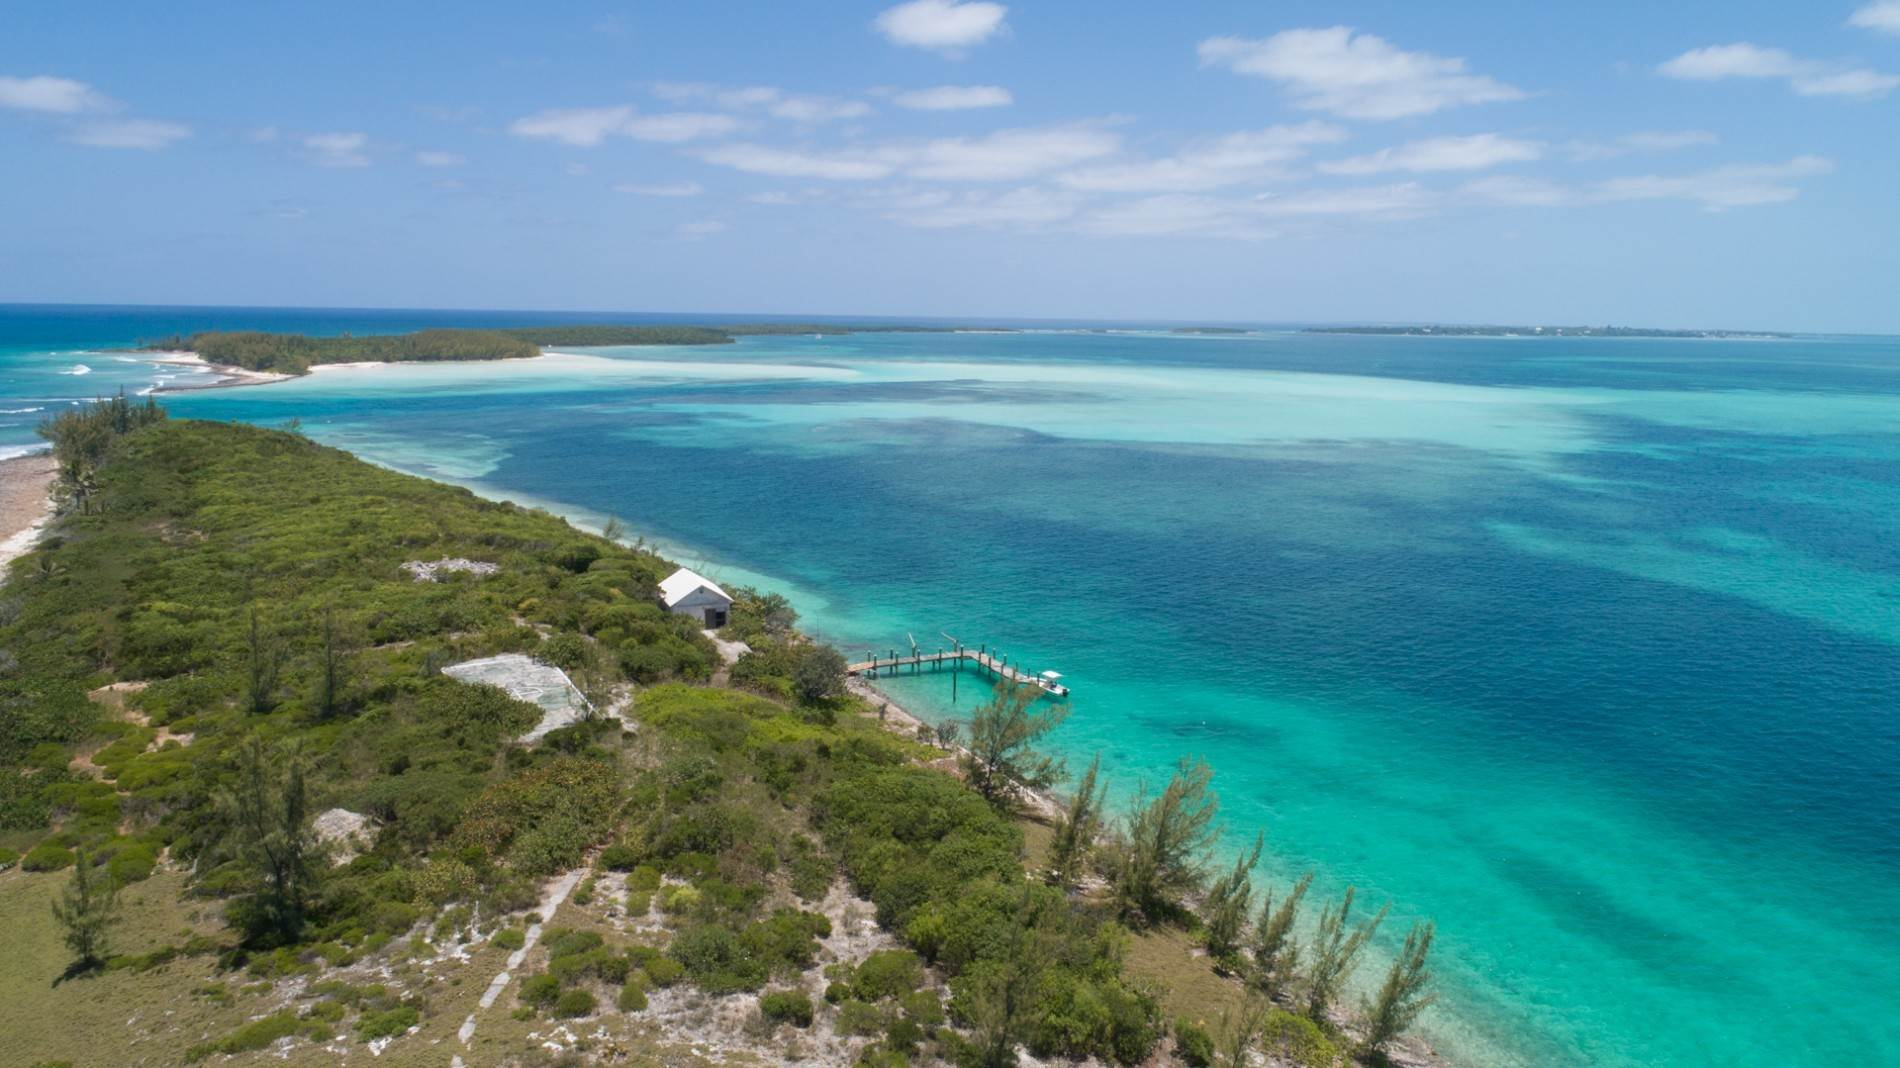 15. Private Islands for Sale at Pierre Island, A Perfect Private Retreat Island Near Harbour Island - MLS 40806 Harbour Island, Eleuthera, Bahamas